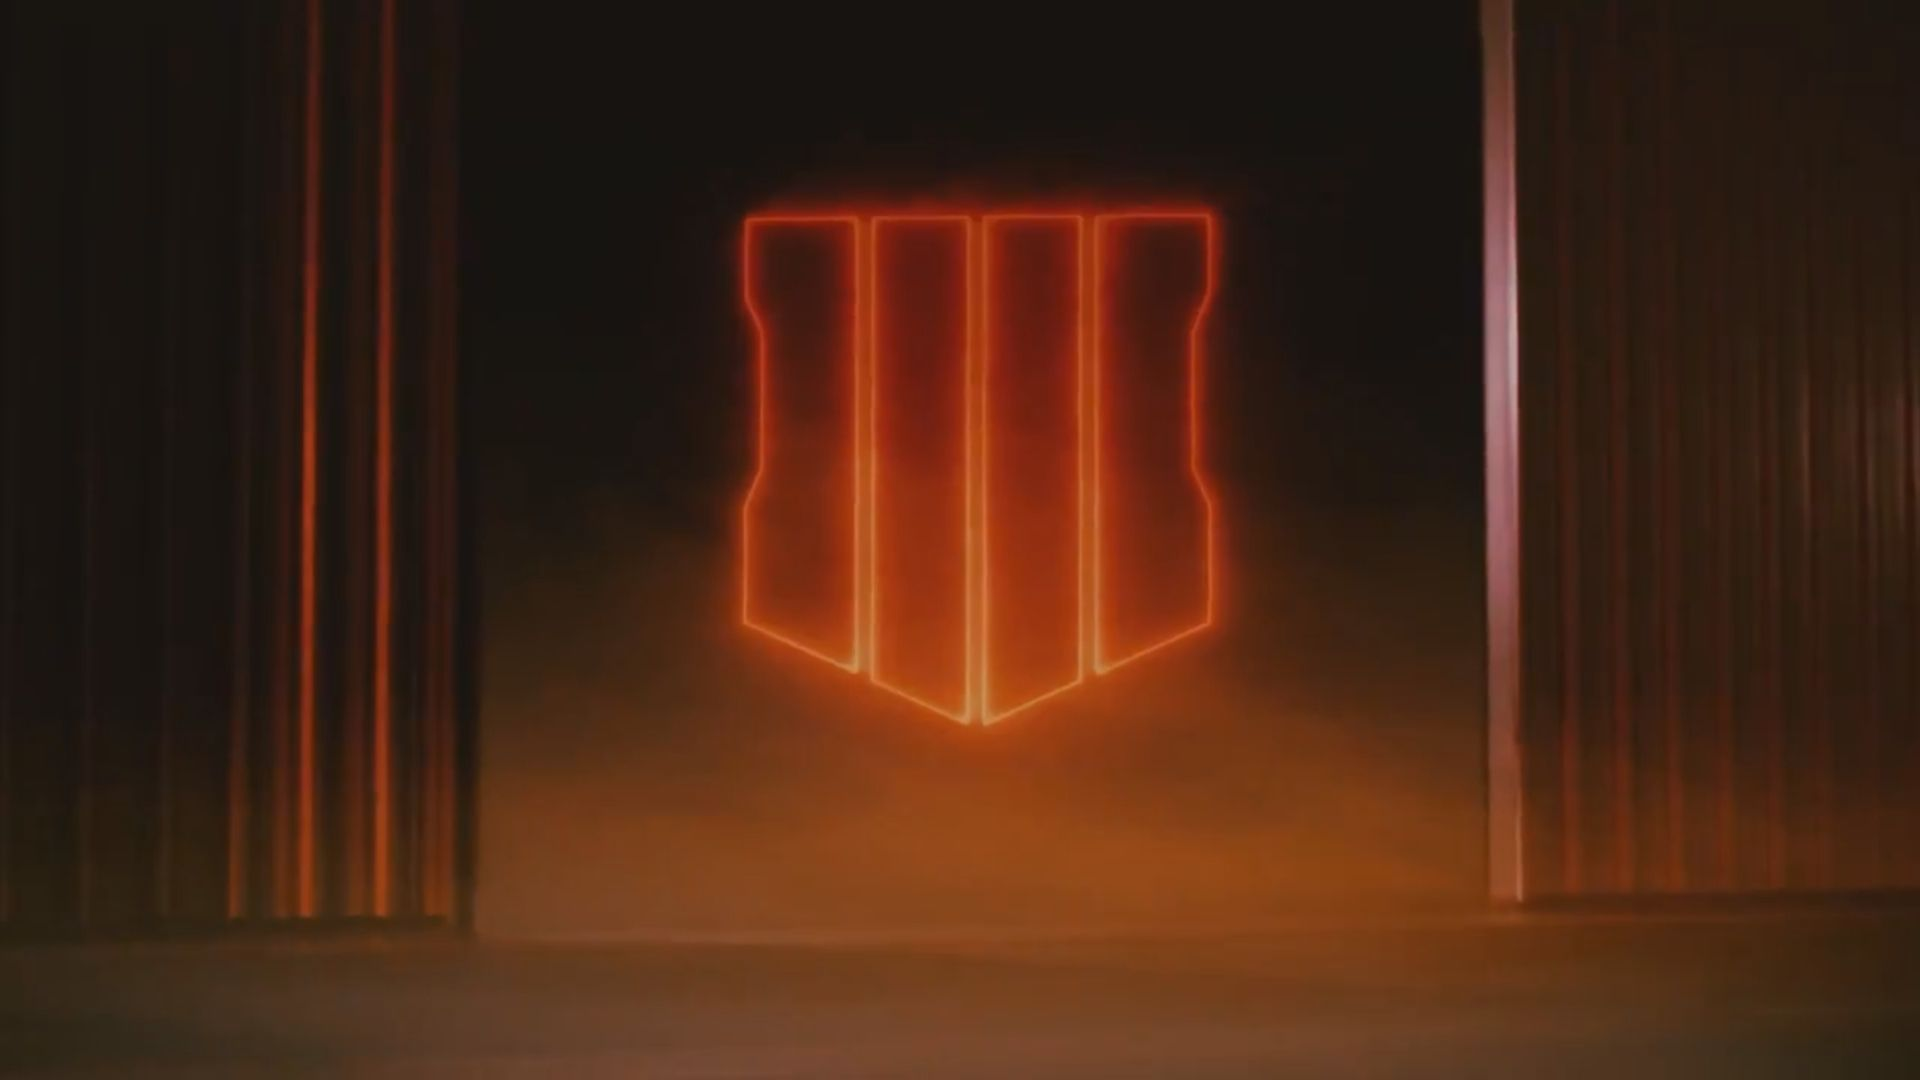 La caja de Call of Duty: Black Ops 4 ha sido filtrada horas antes del evento revelación